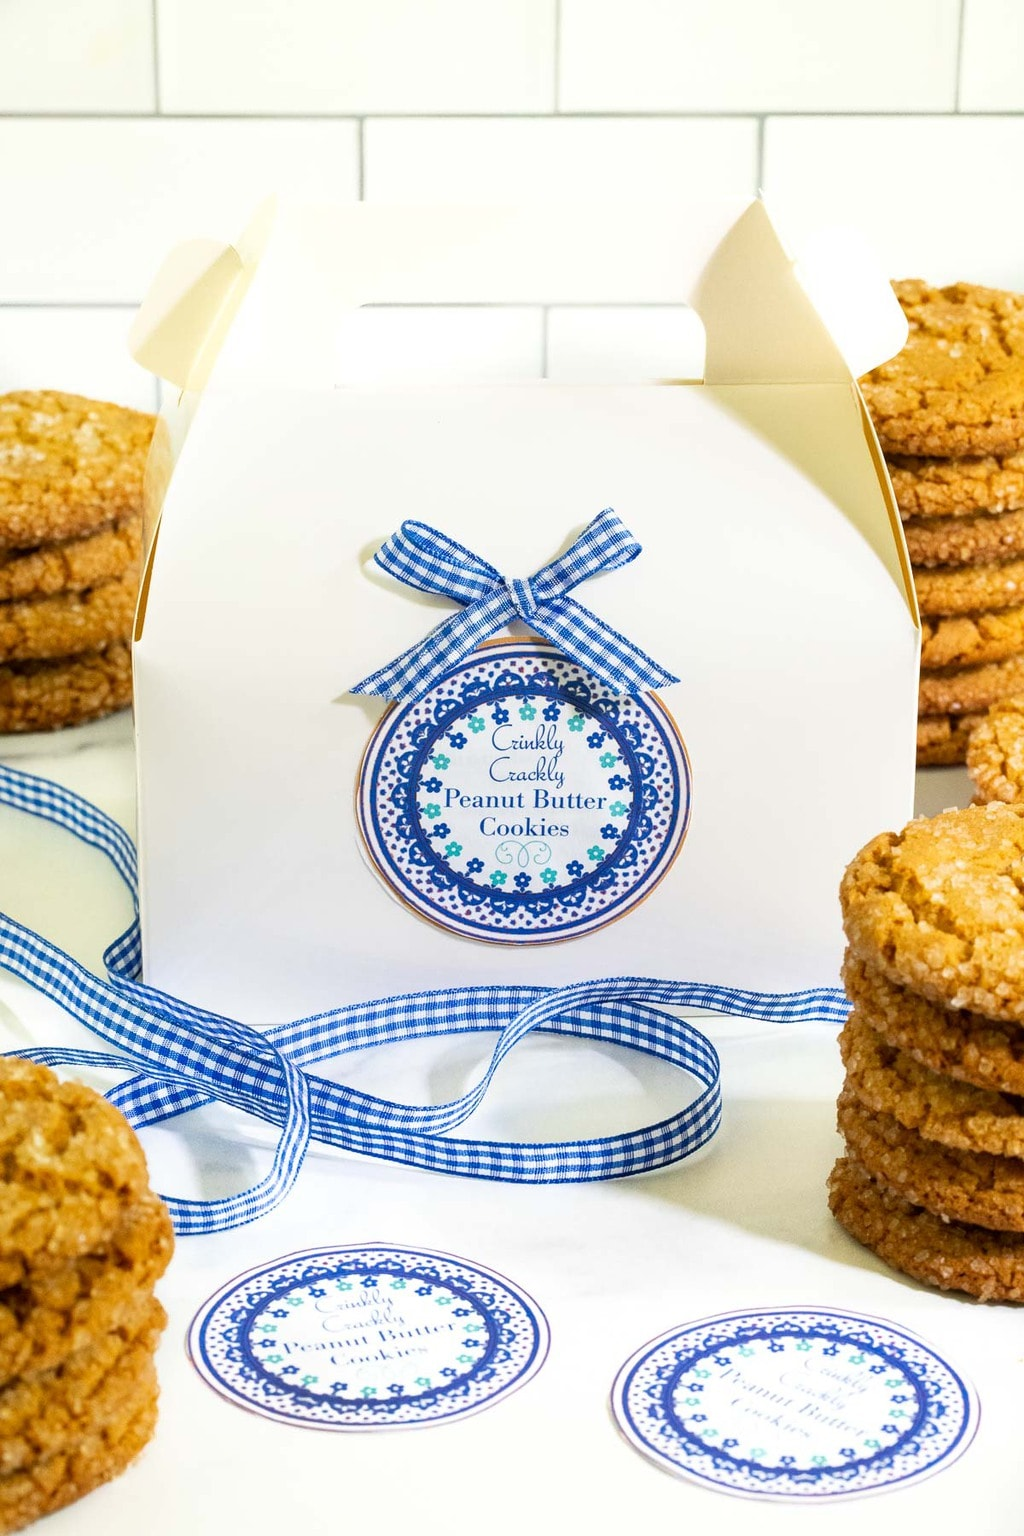 Vertical photo of a gift box and custom Crinkly Crackly Peanut Butter Cookie label.